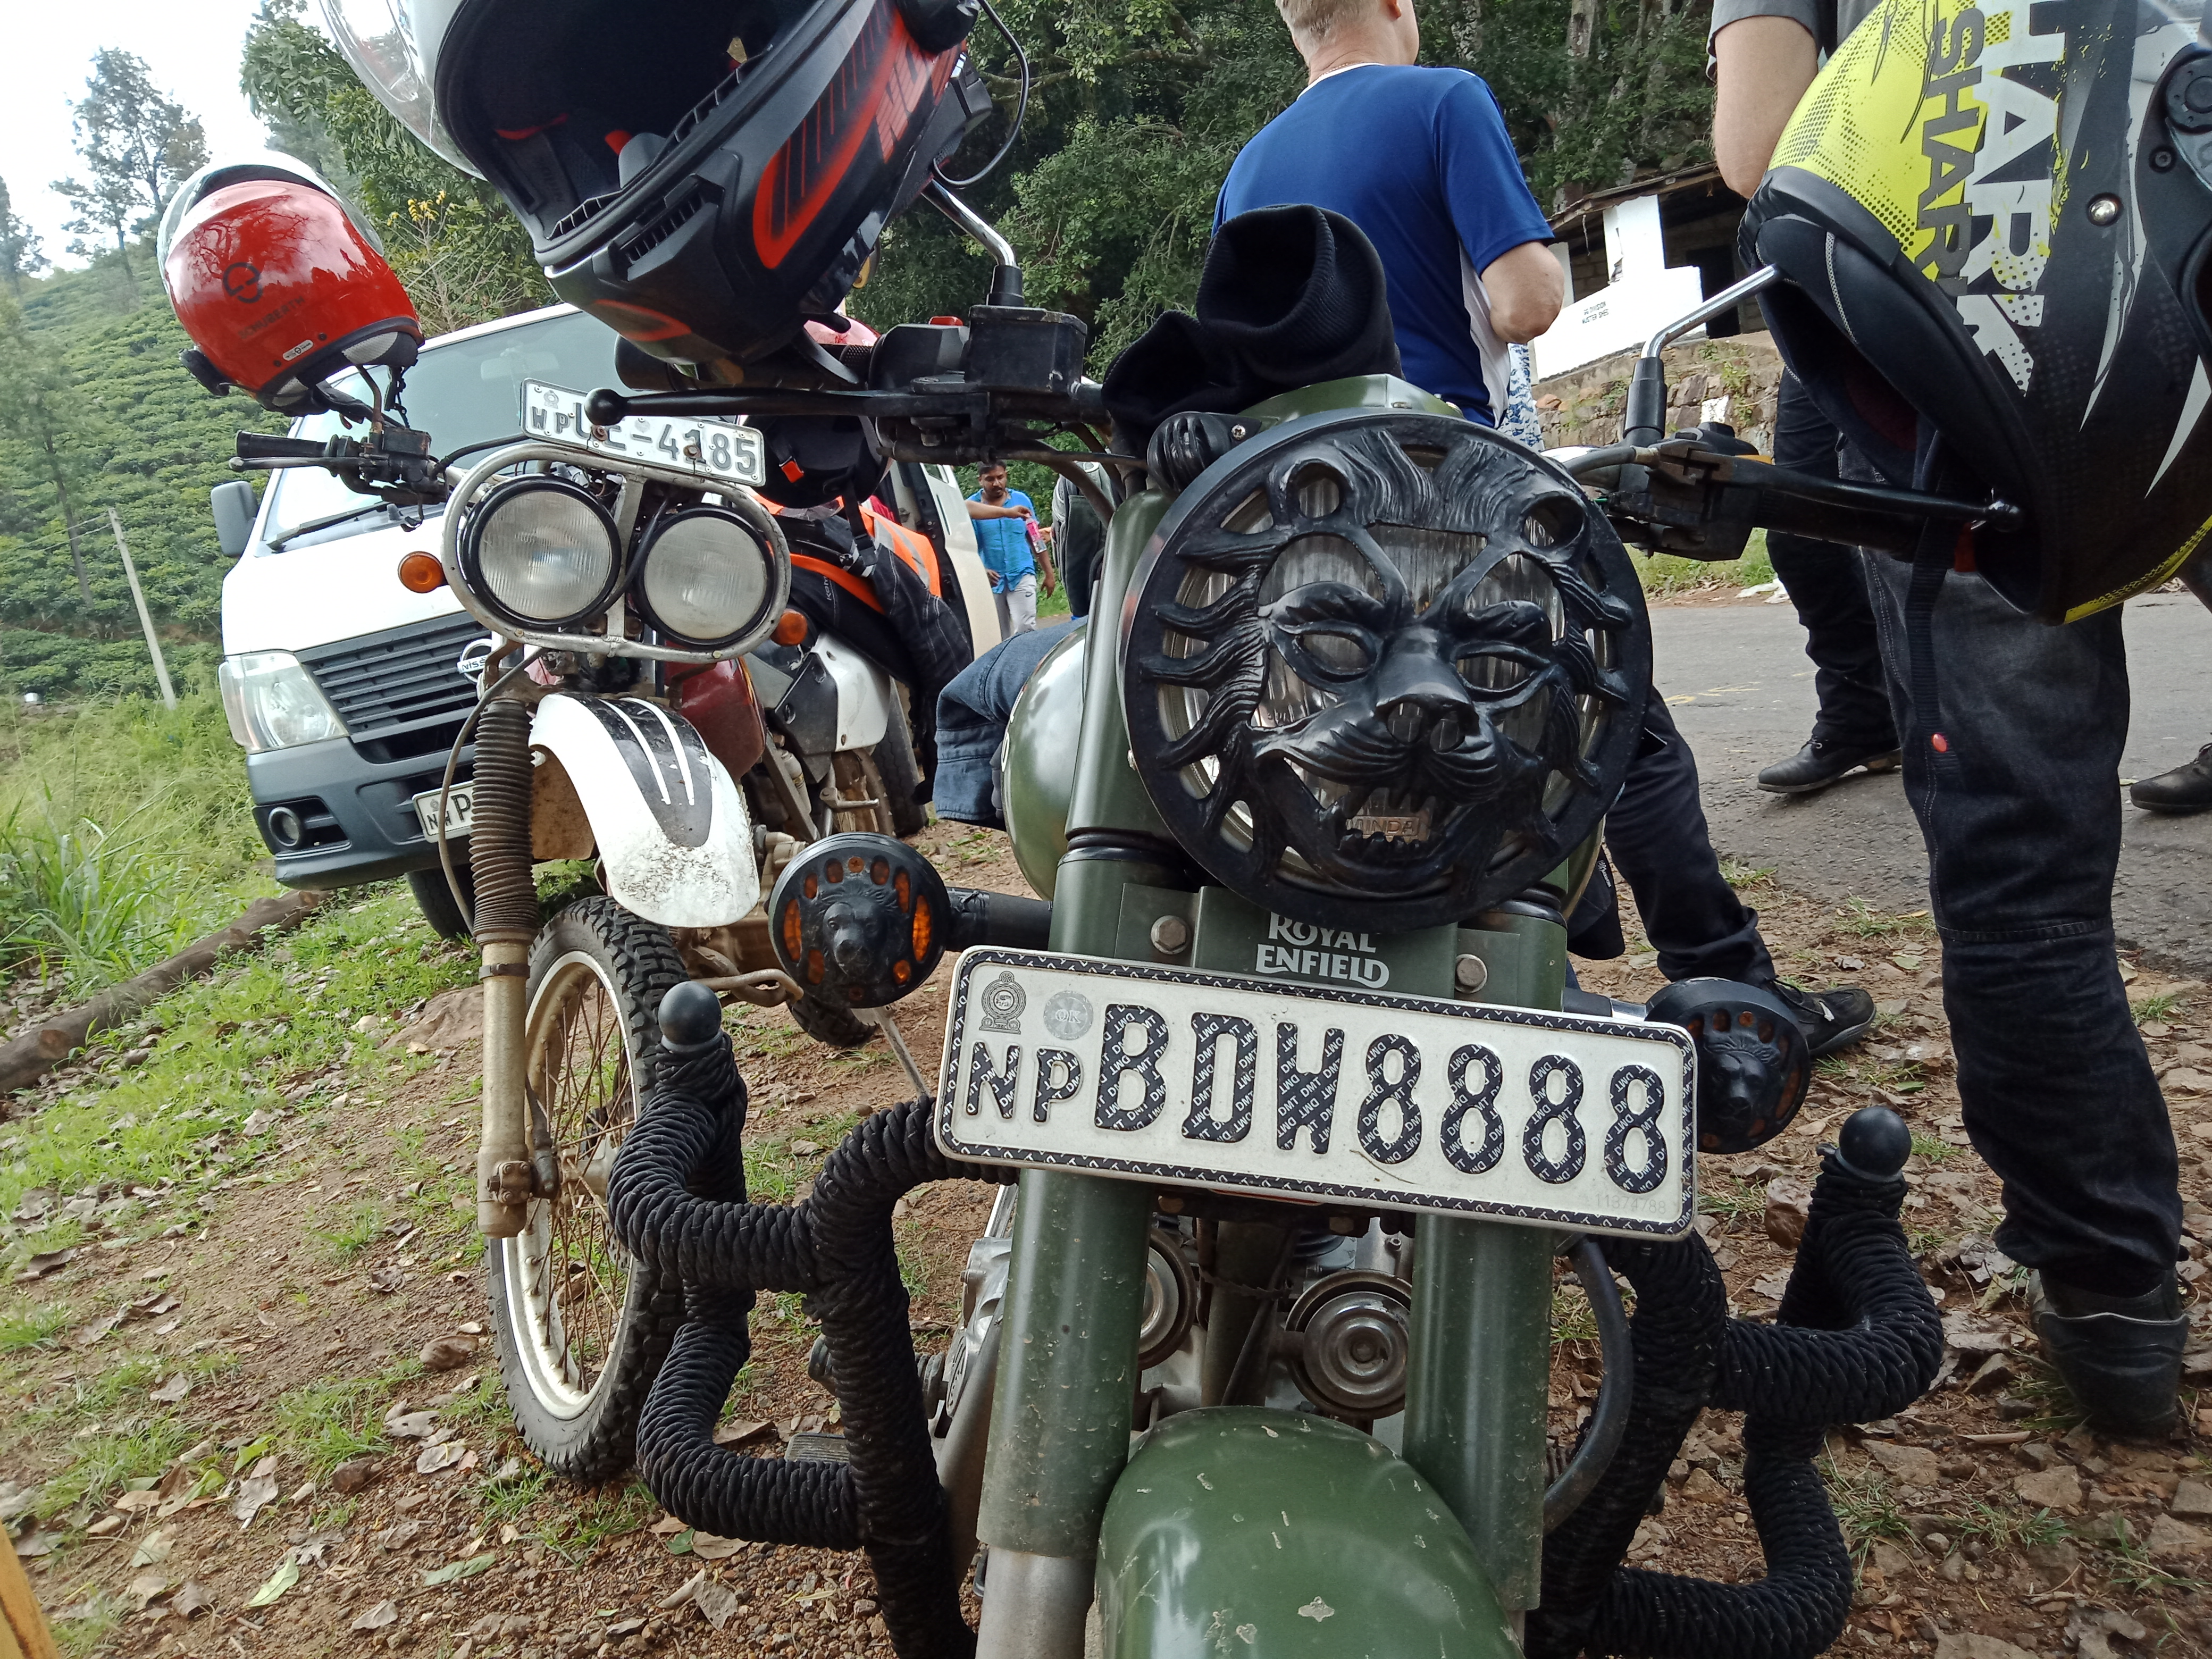 Must be a Lion bike